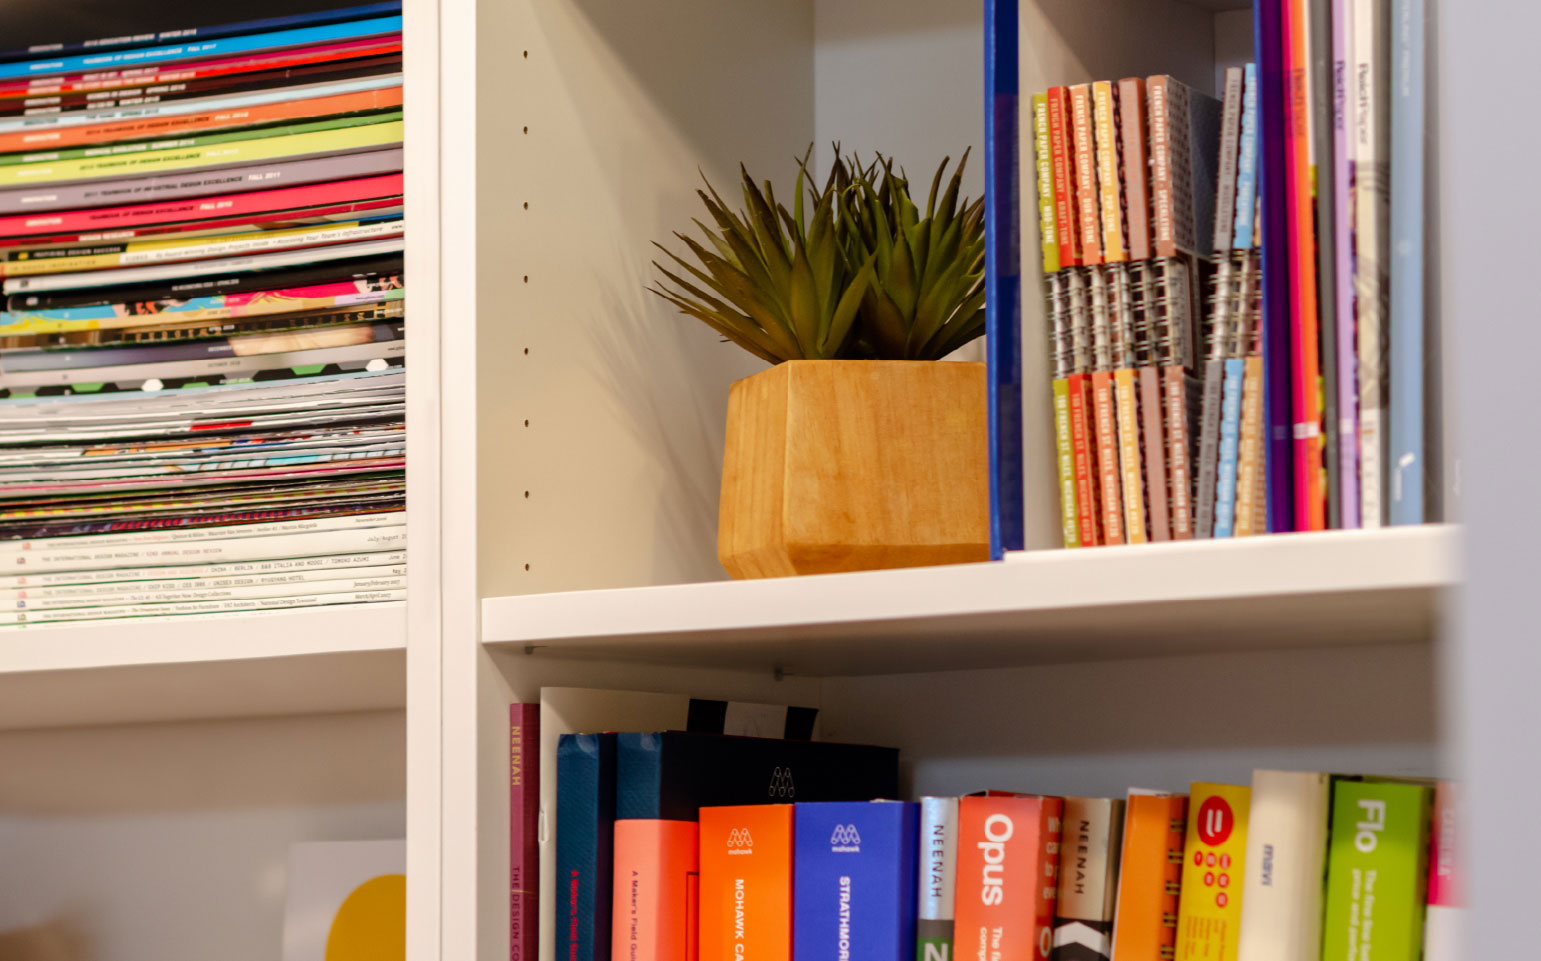 Library with books, magazines and a plant